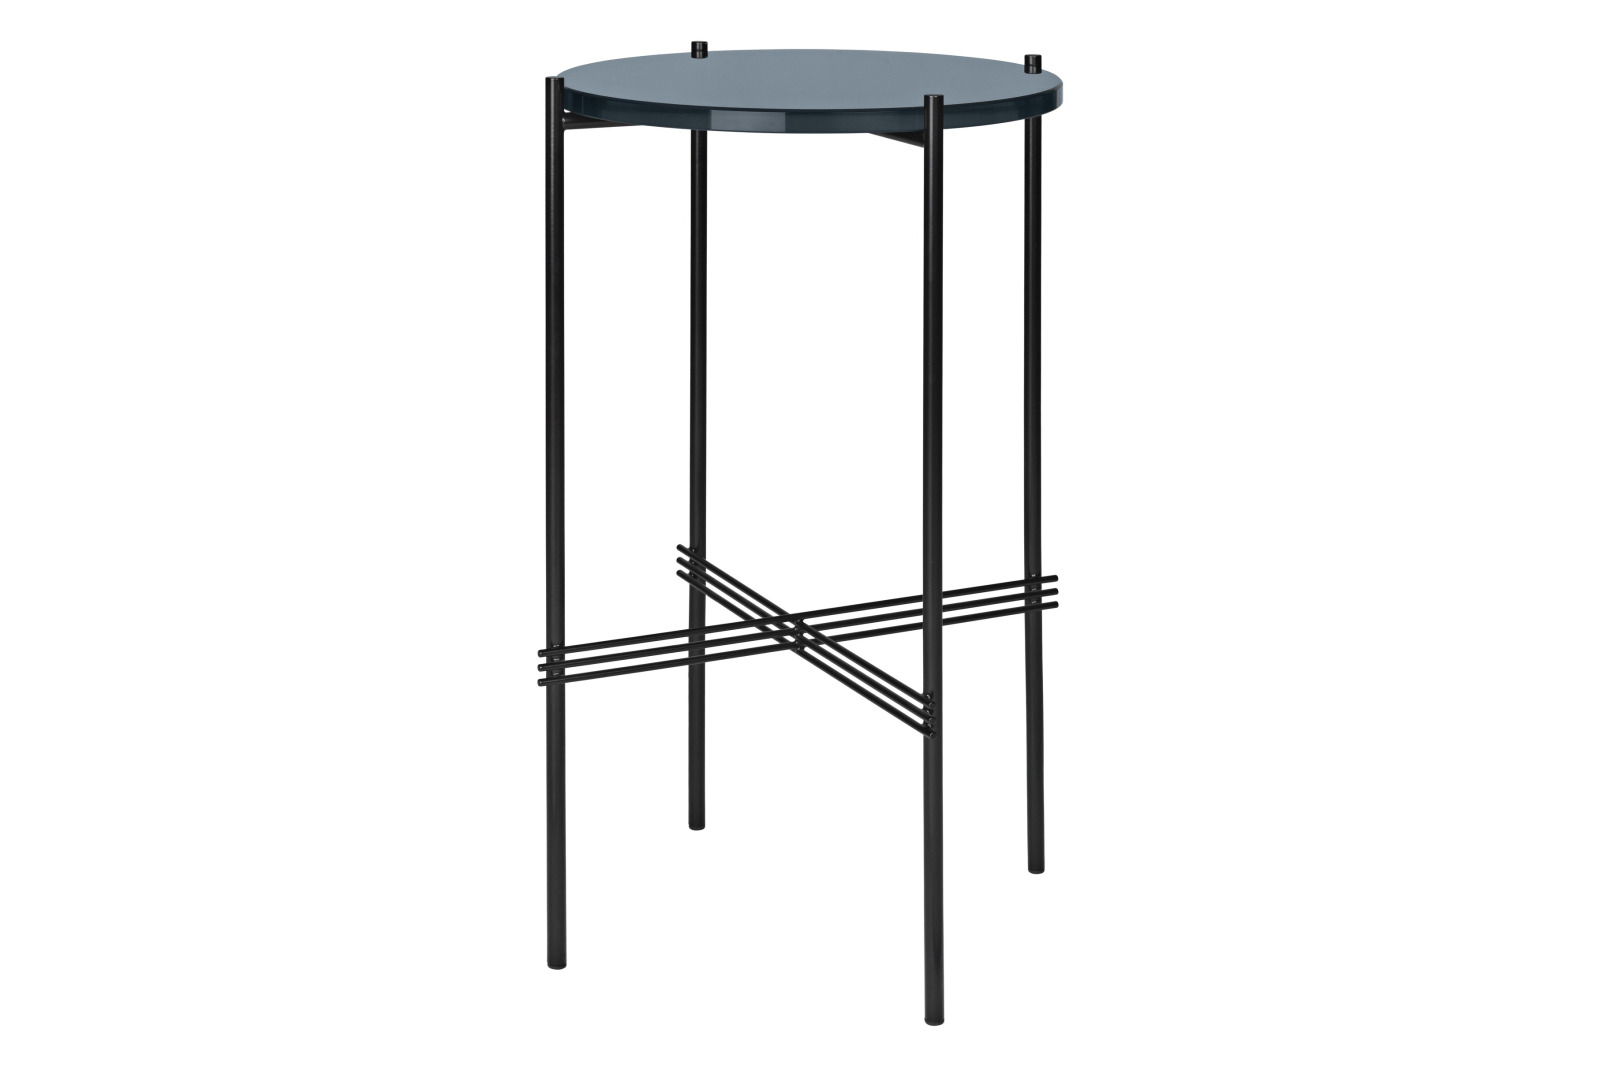 TS Round Console Table with Glass Top Grey Blue Top and Black Frame